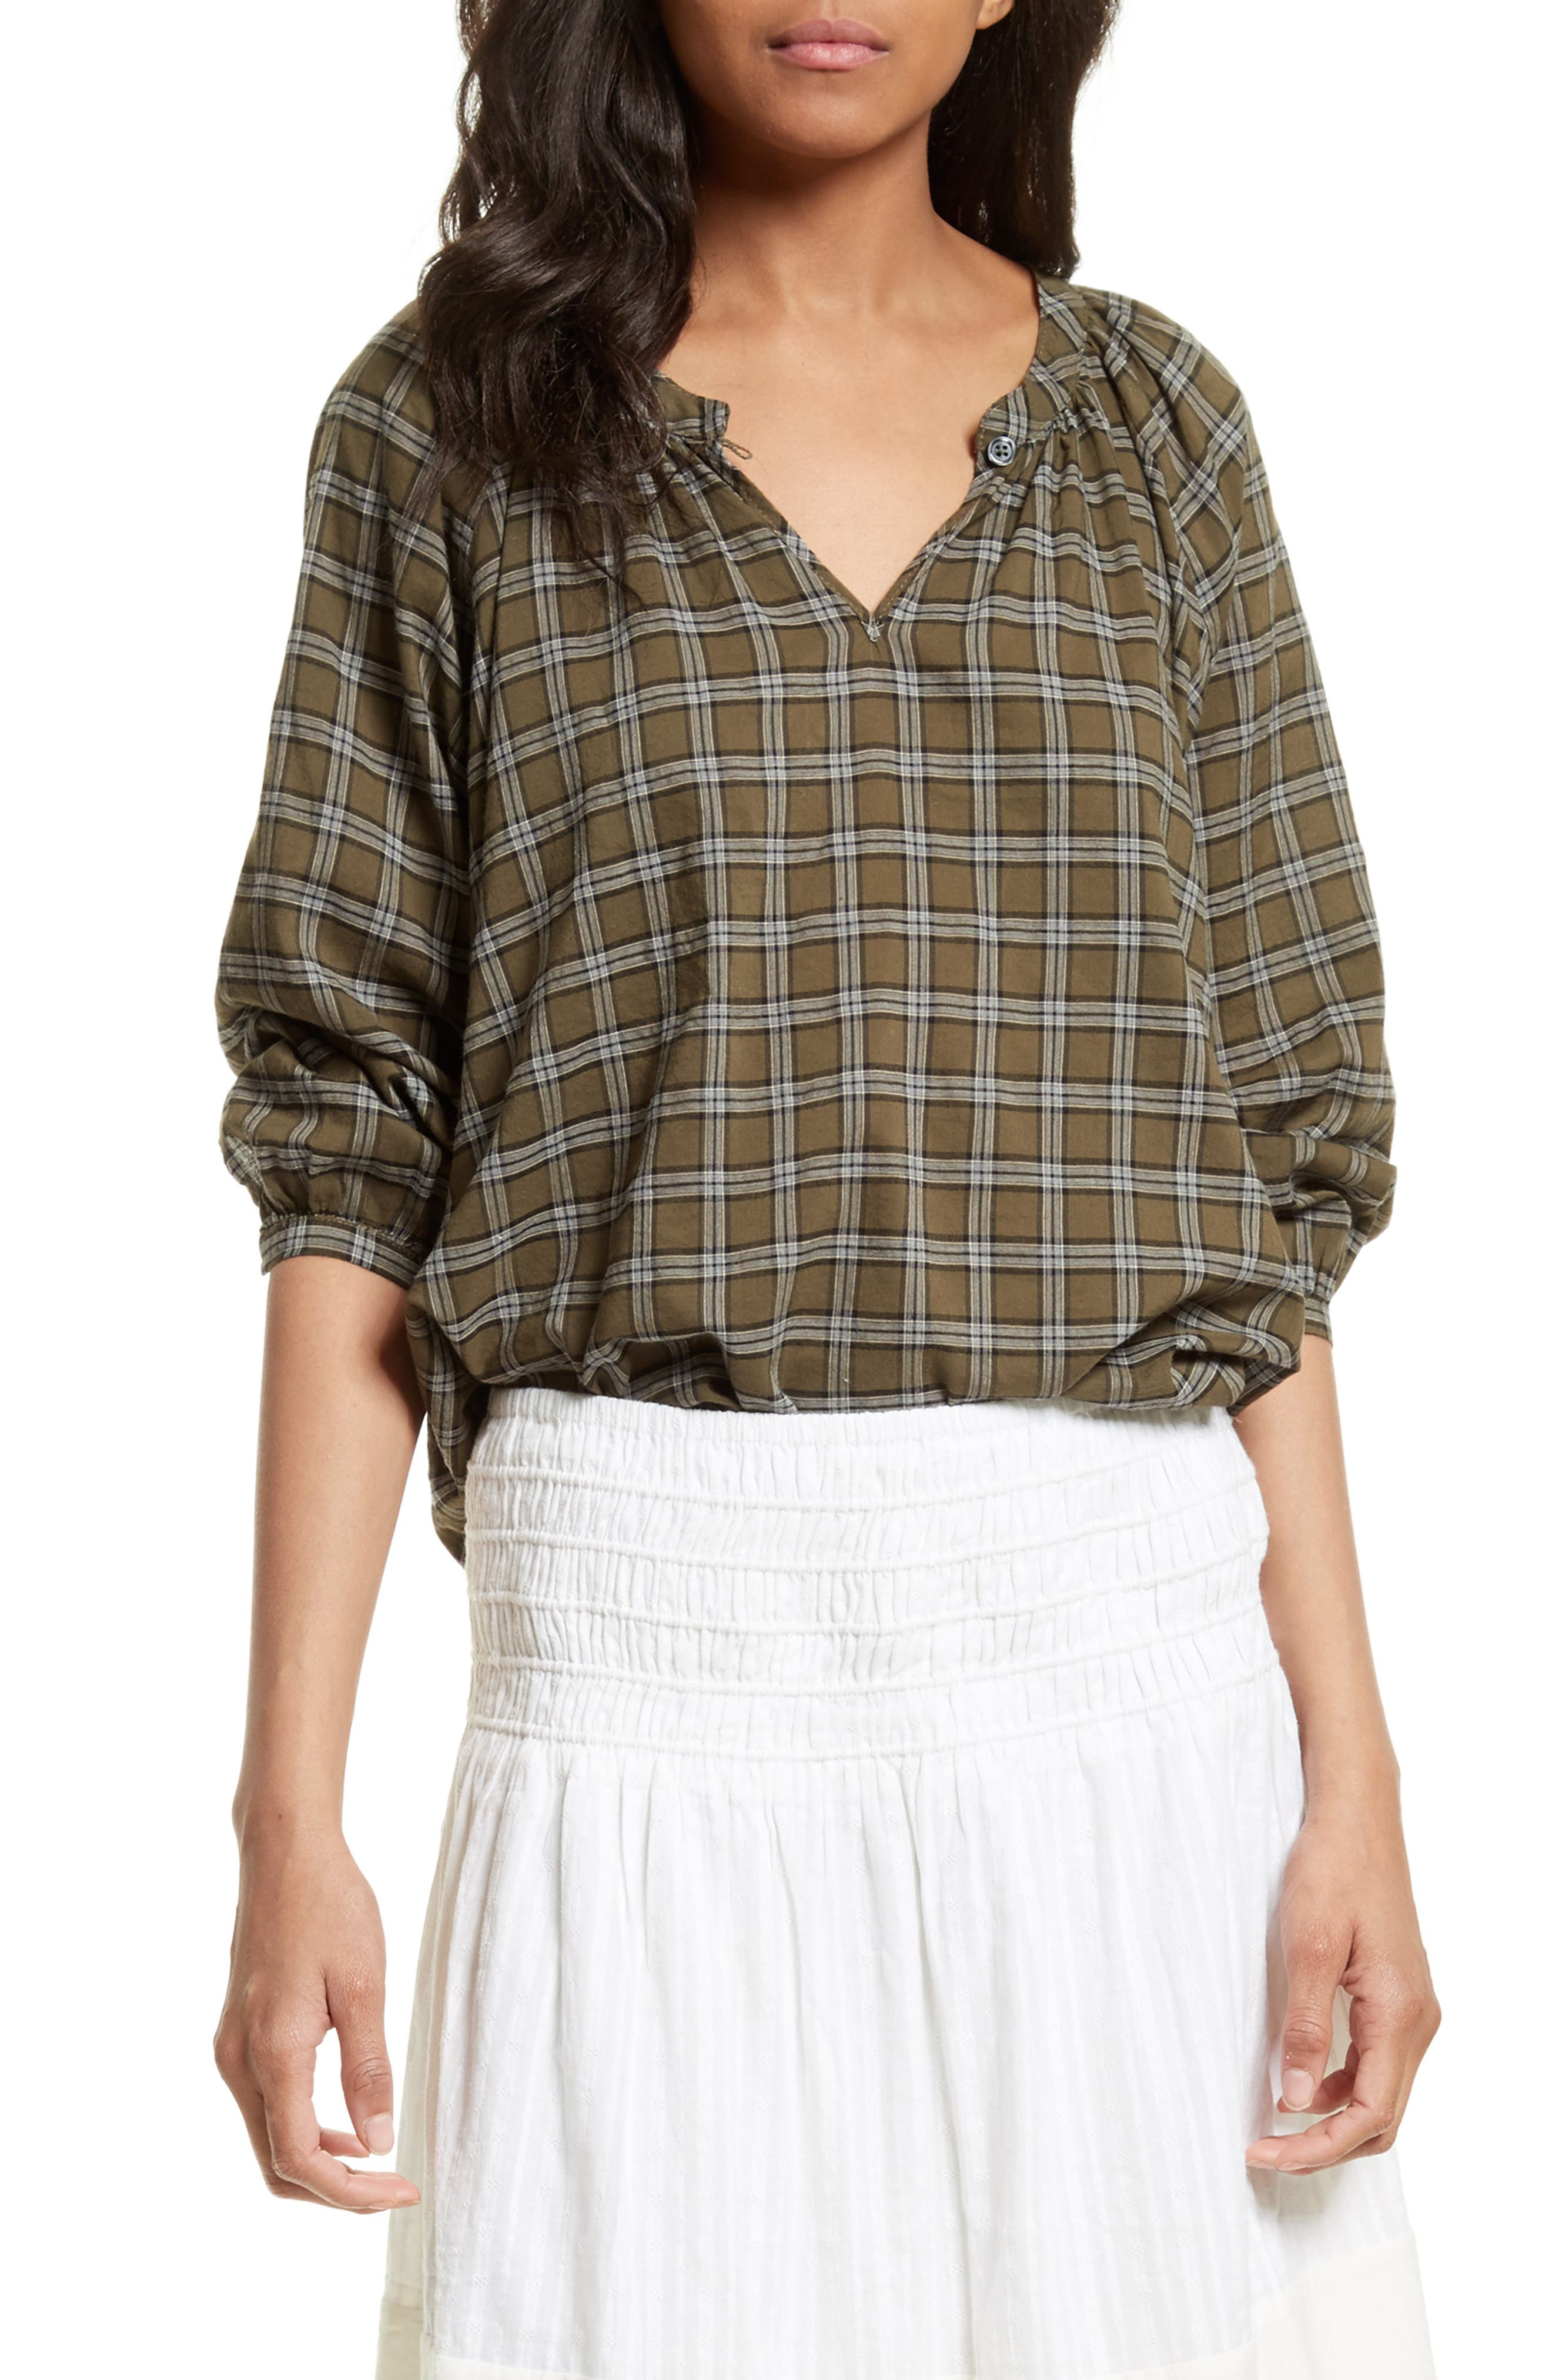 The Wildflower Plaid Top,                         Main,                         color, Army Green Plaid